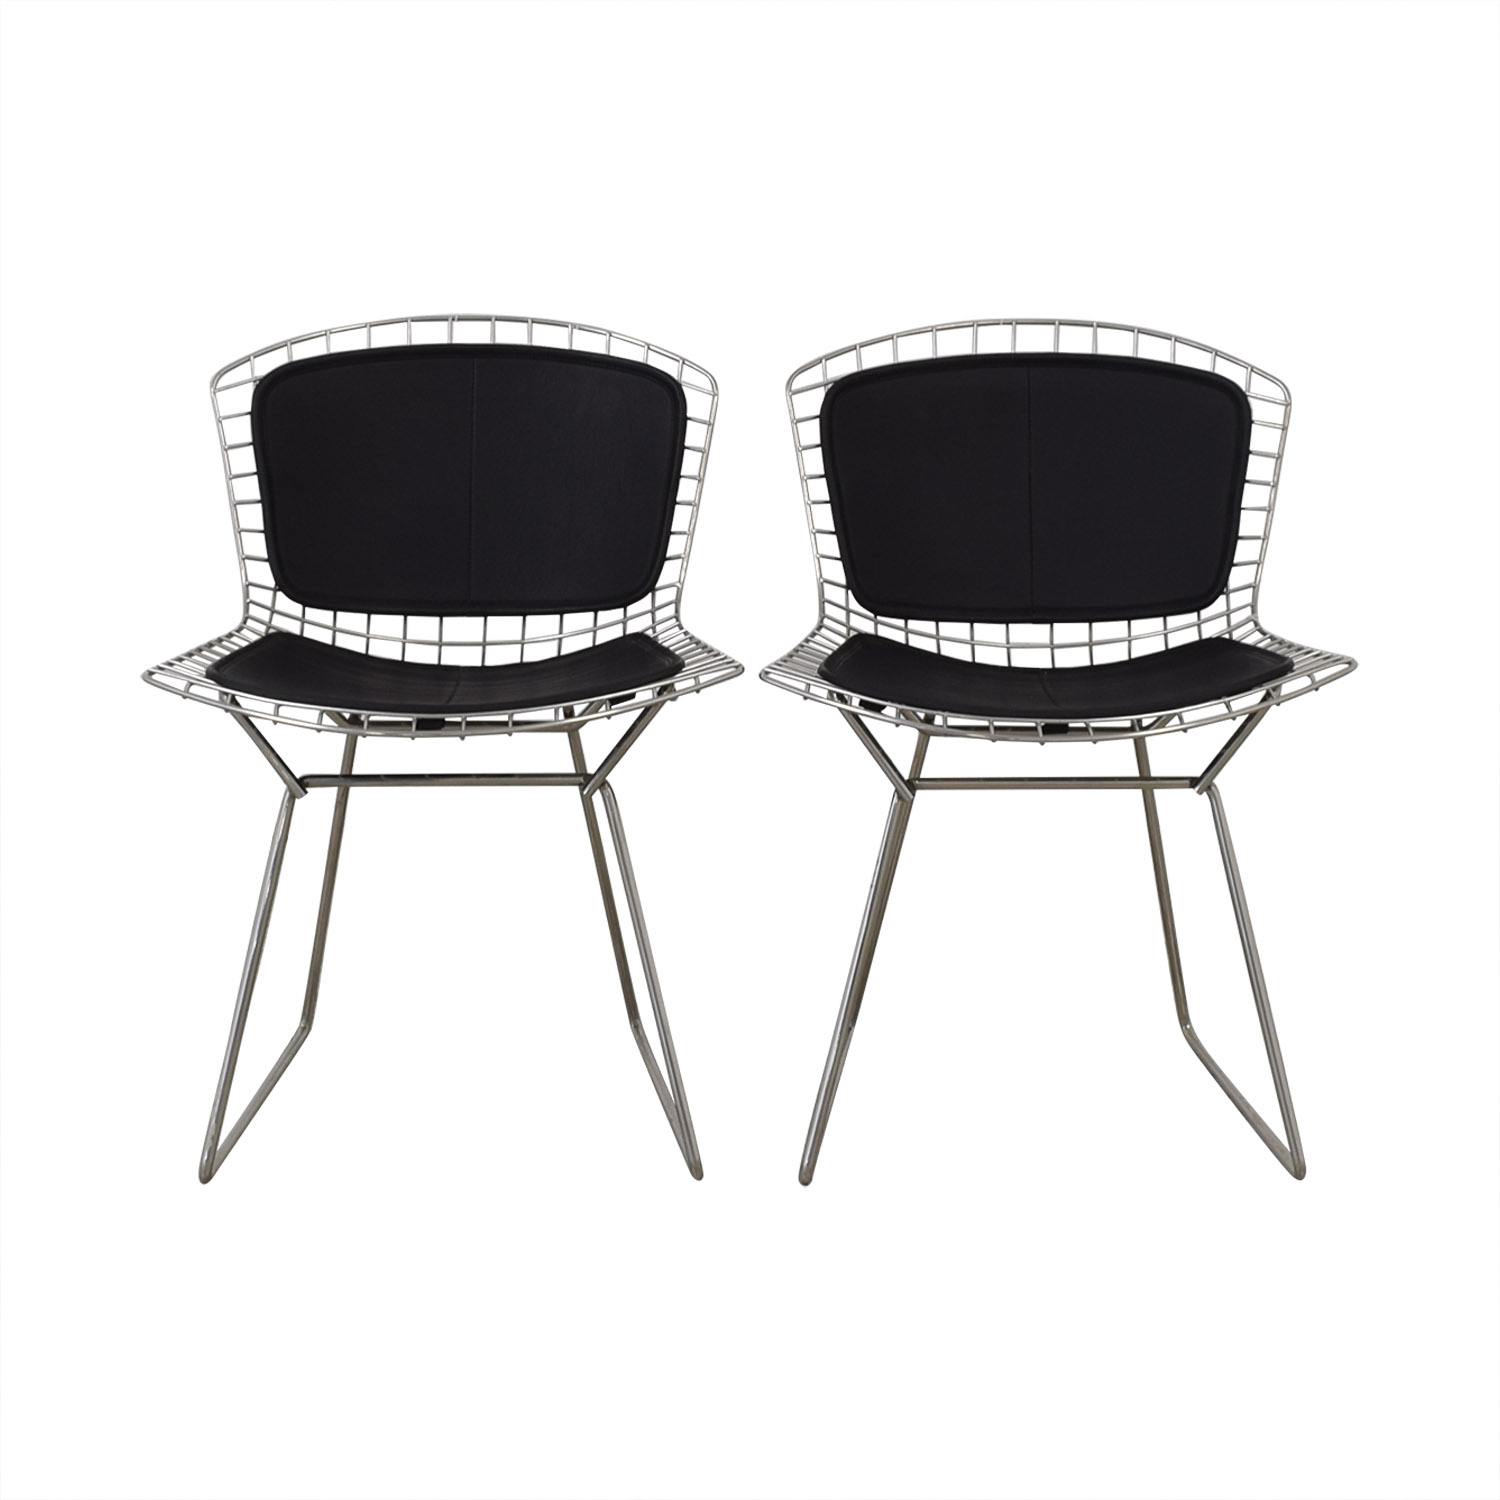 Control Brand Control Brand Bertoia-Style Chairs on sale